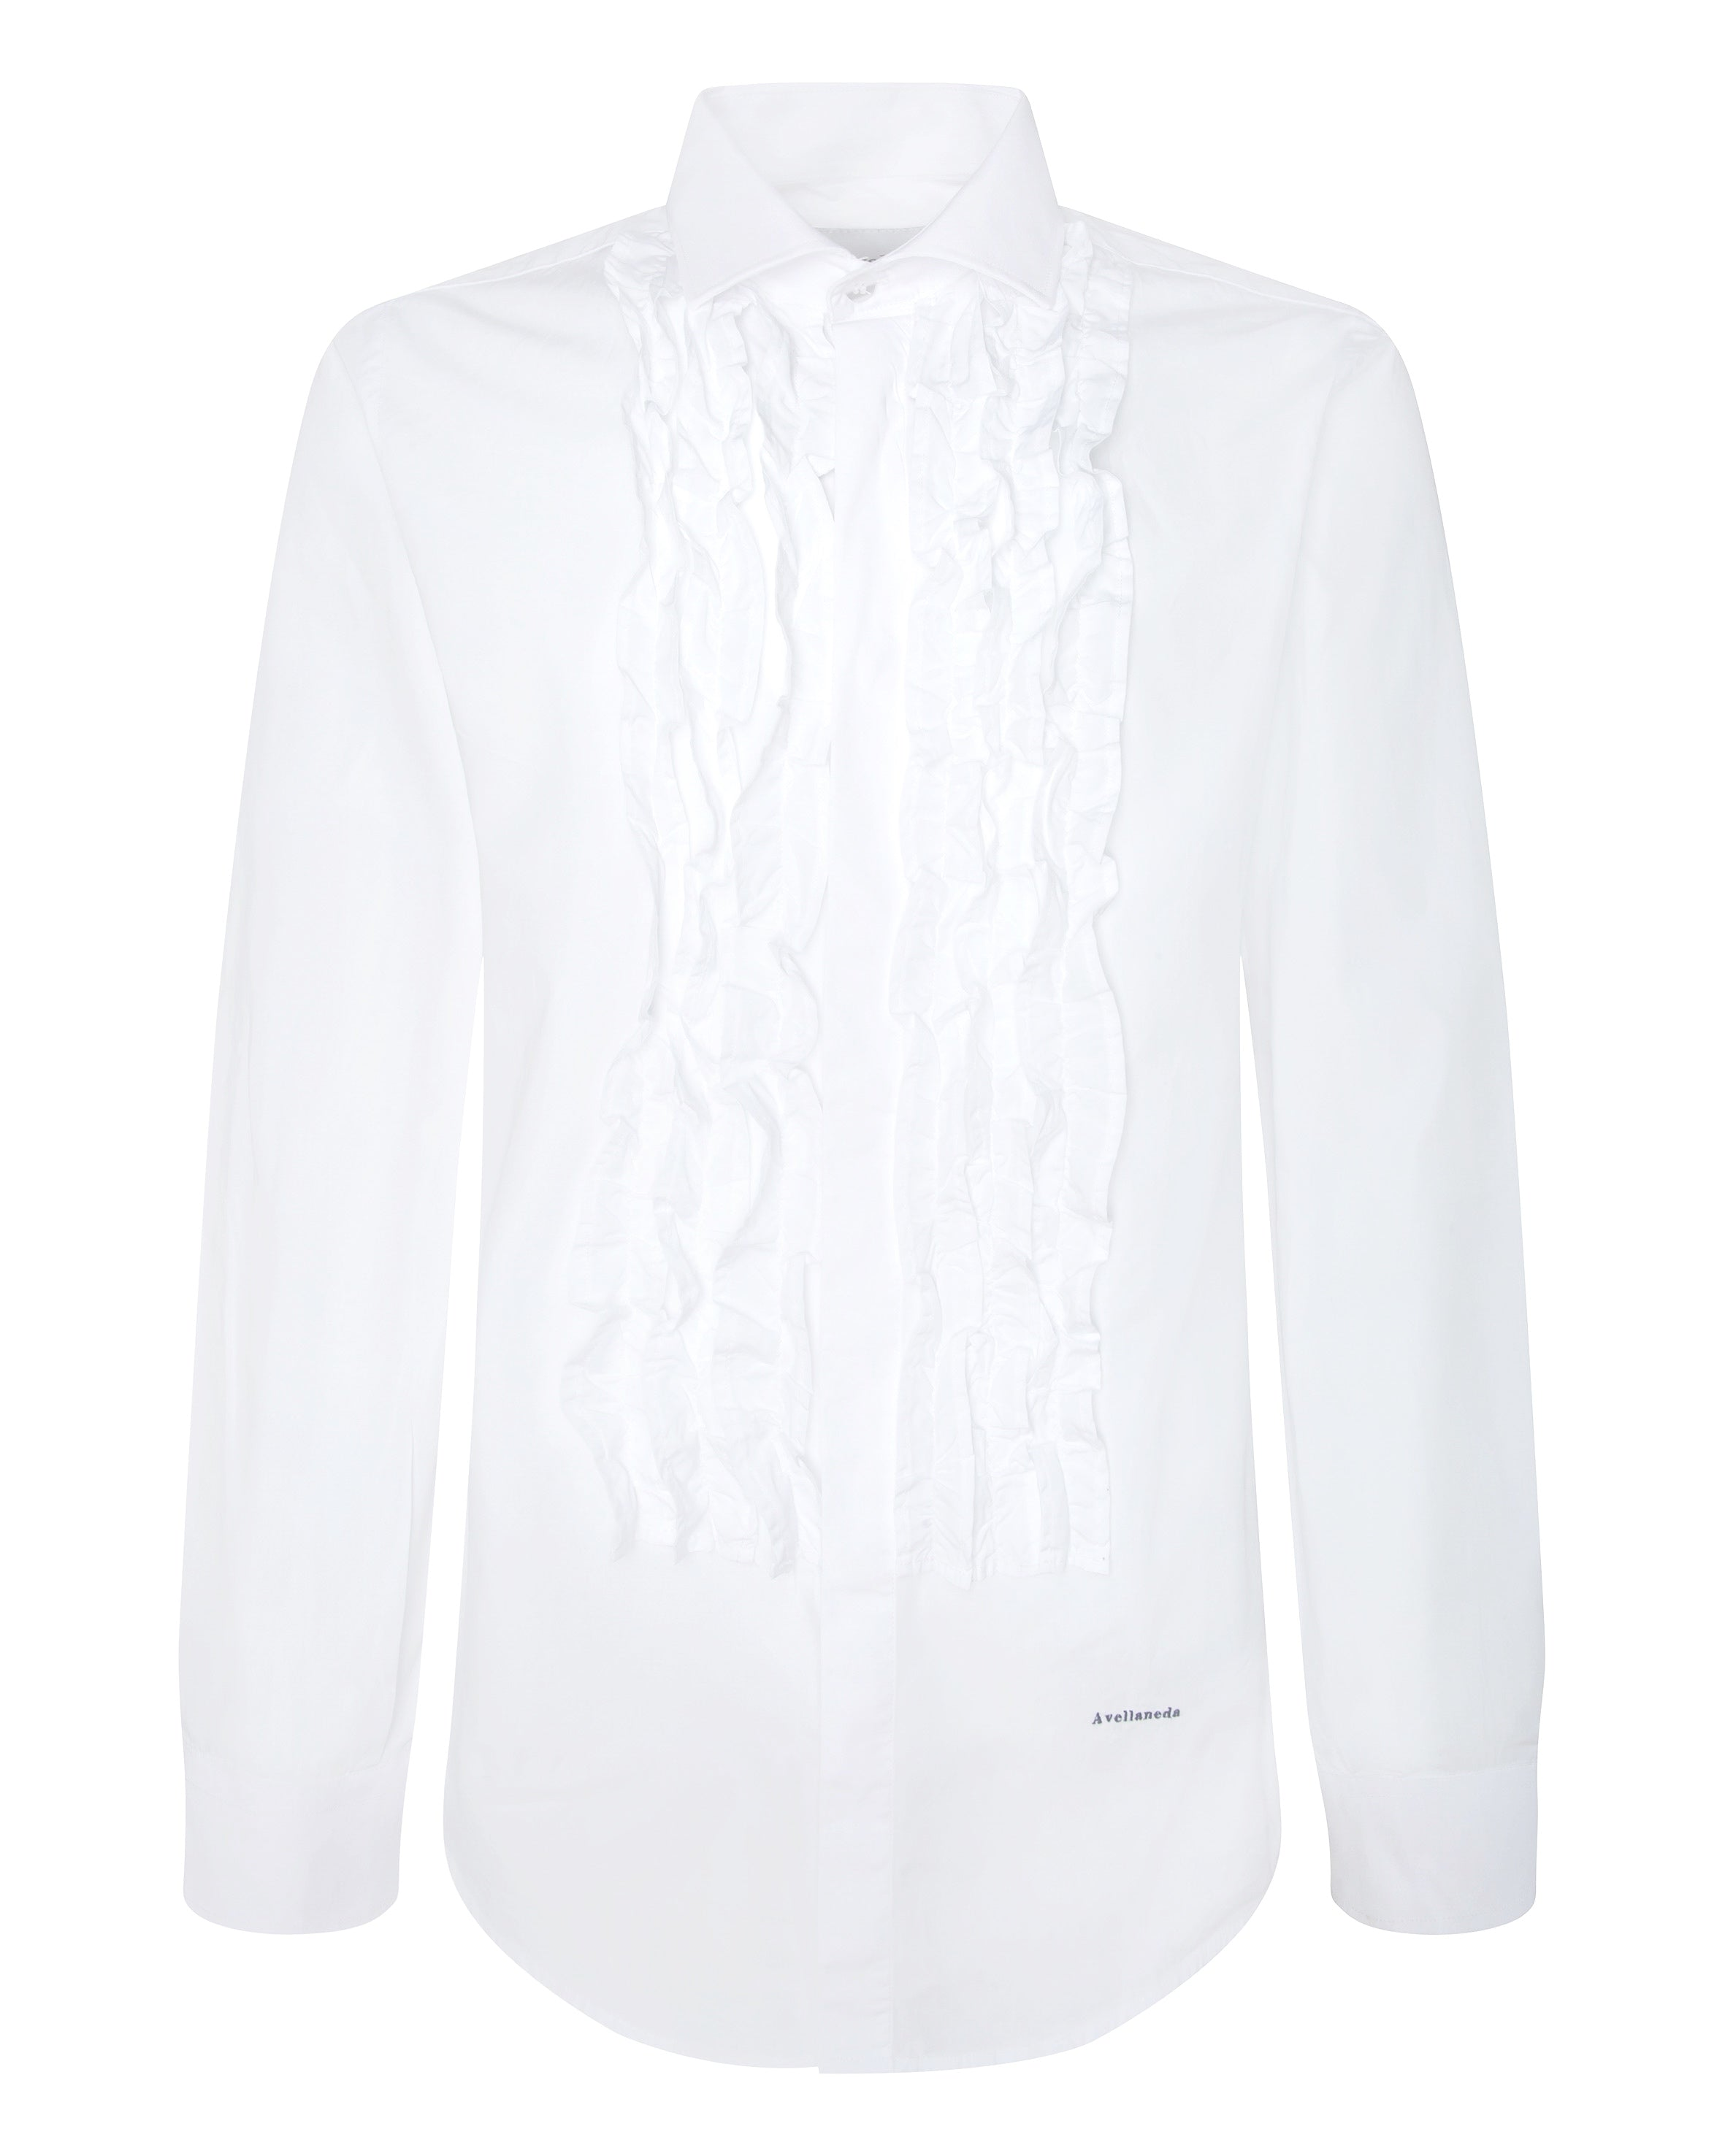 WOMEN'S MULTI-RUFFLED ALL WHITE SHIRT